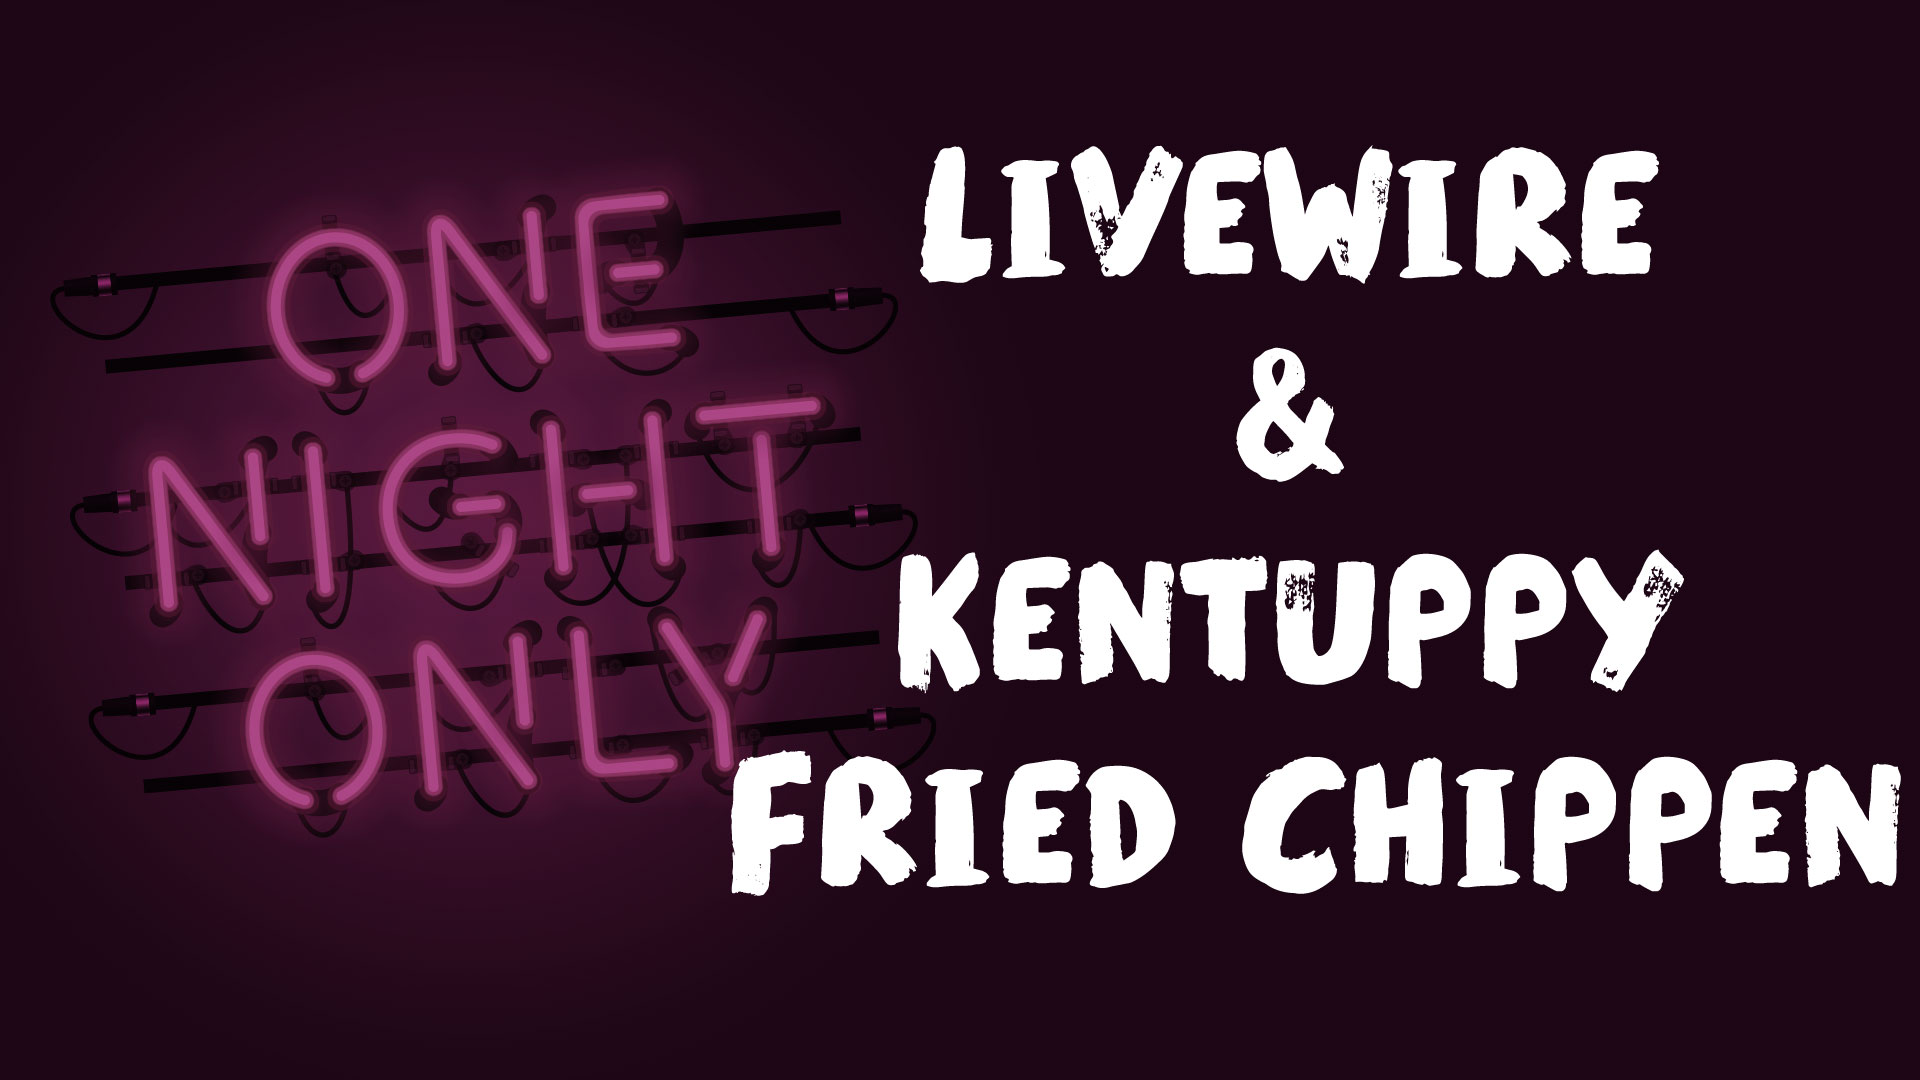 One Night Only: LiveWire and Kentuppy Fried Chippen